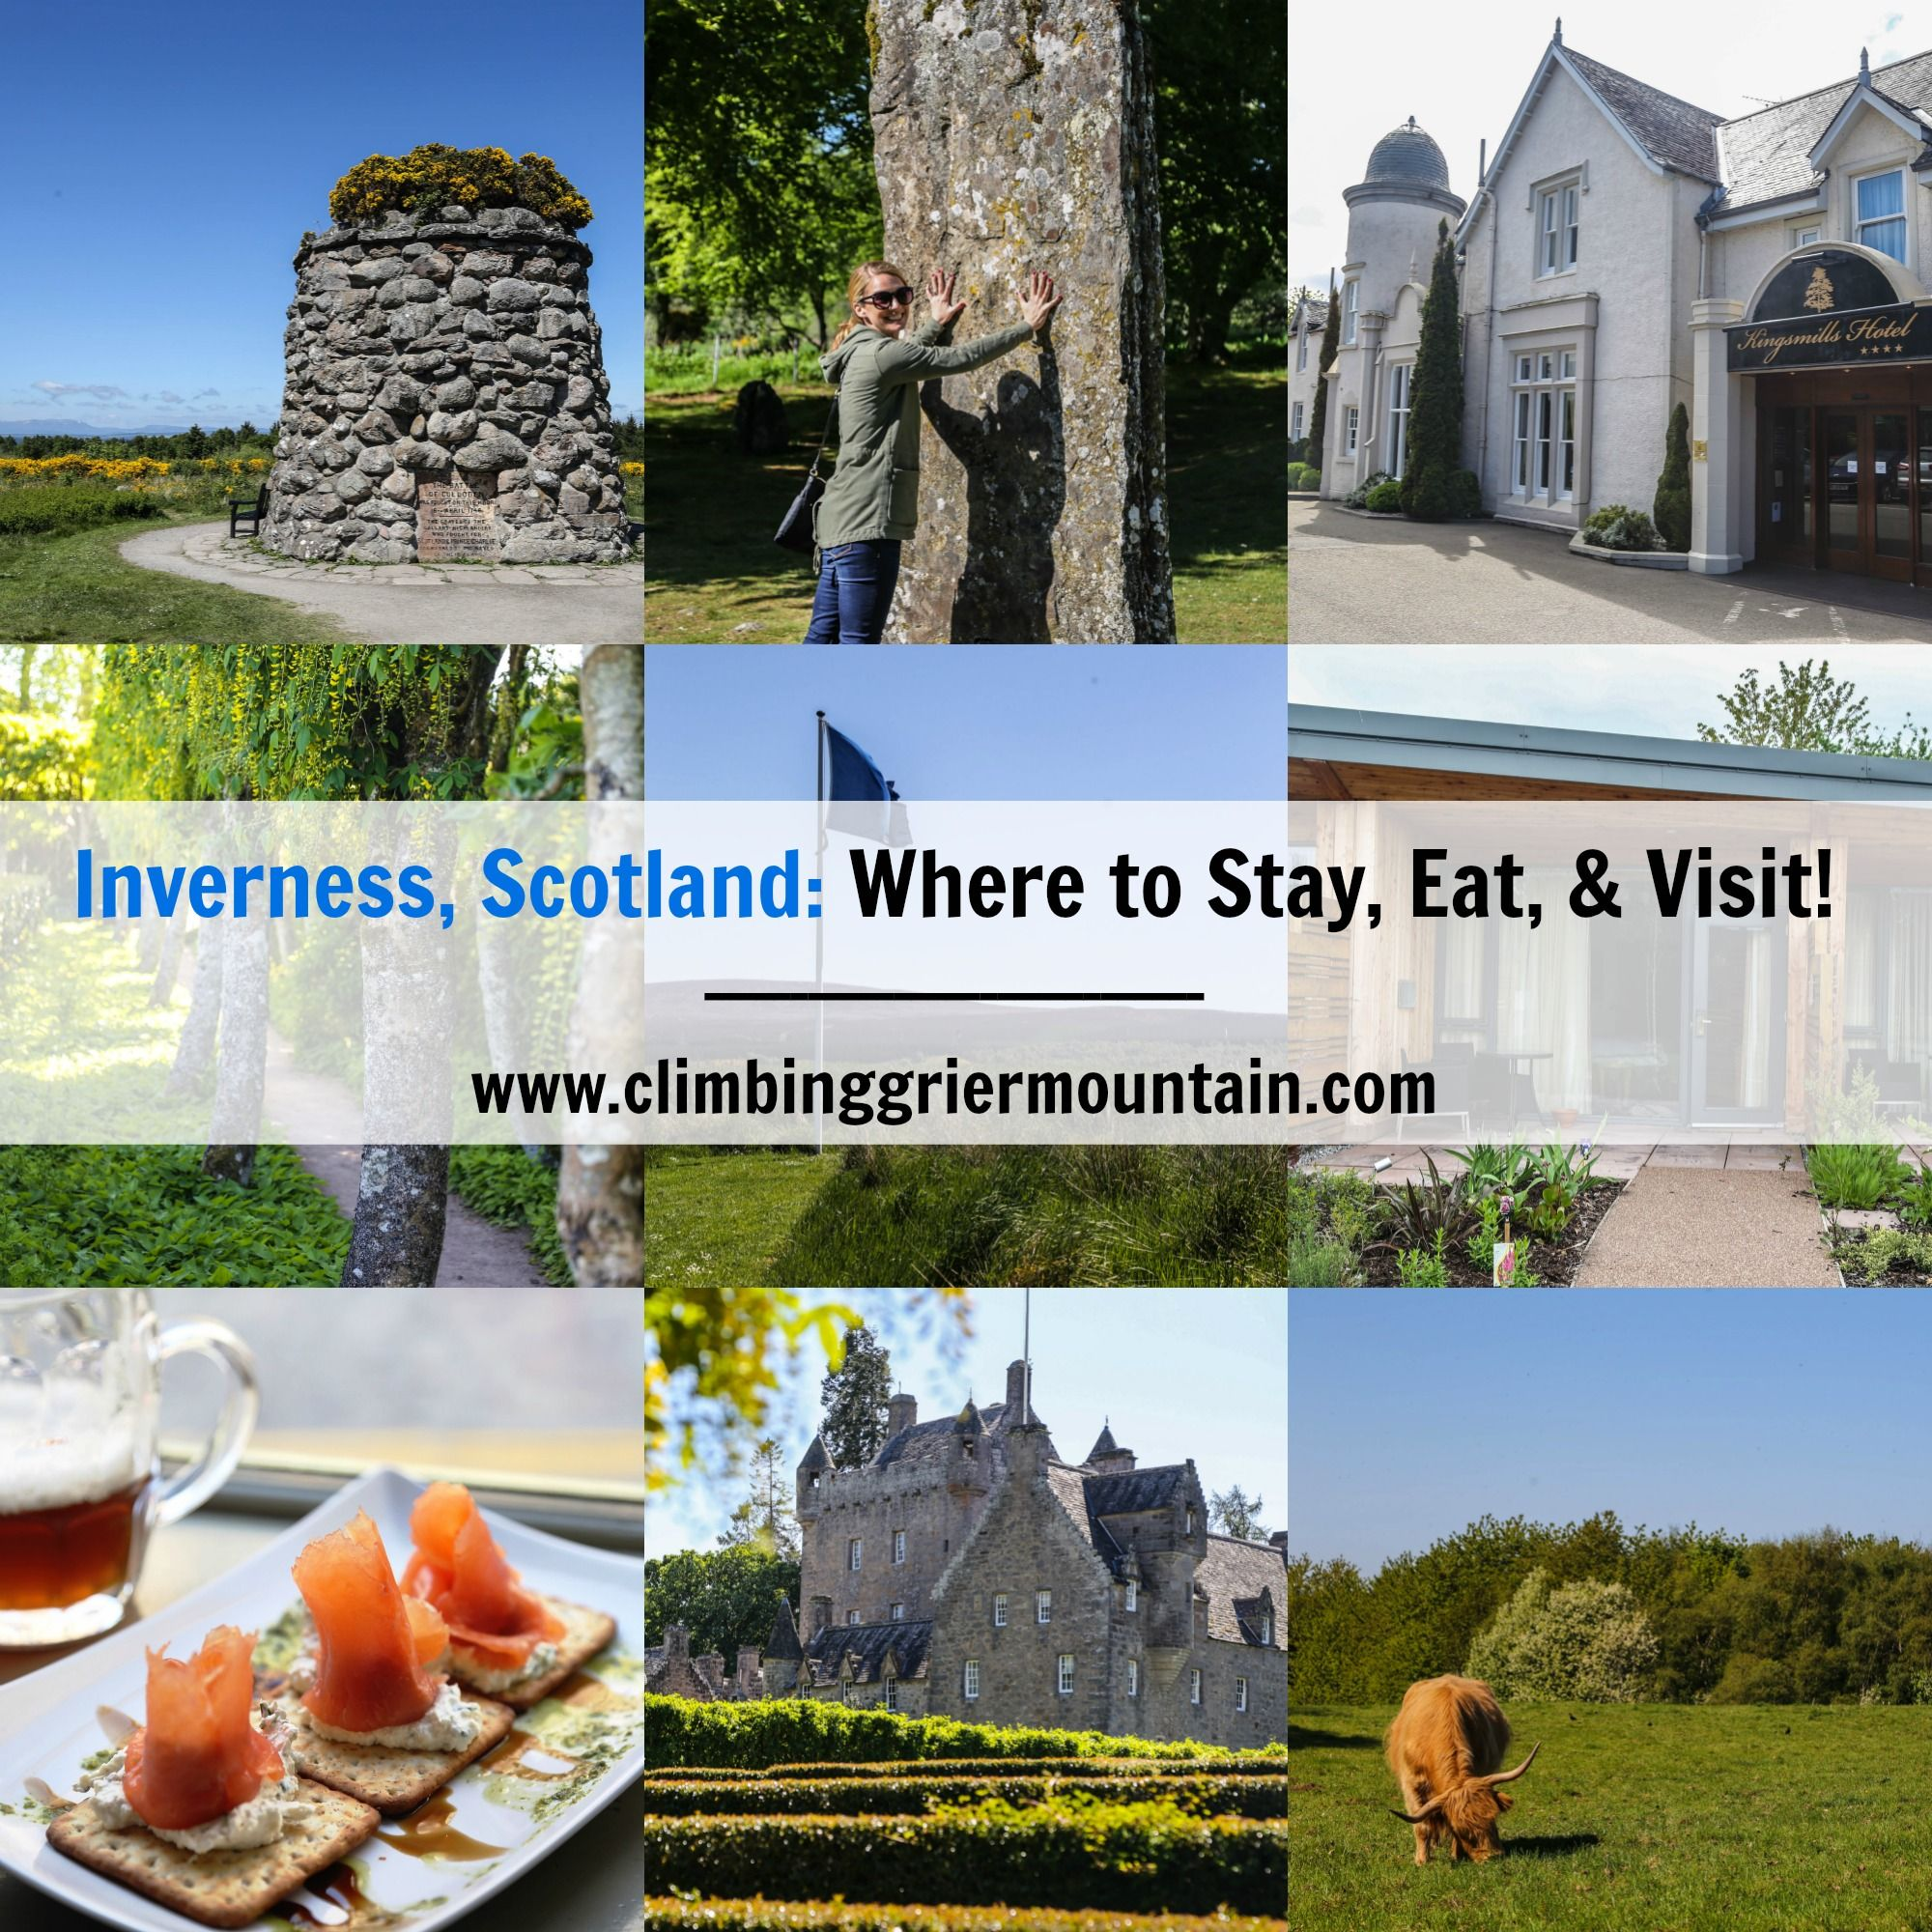 Inverness, Scotland: Where to Stay, Eat, & Visit #travelscotland